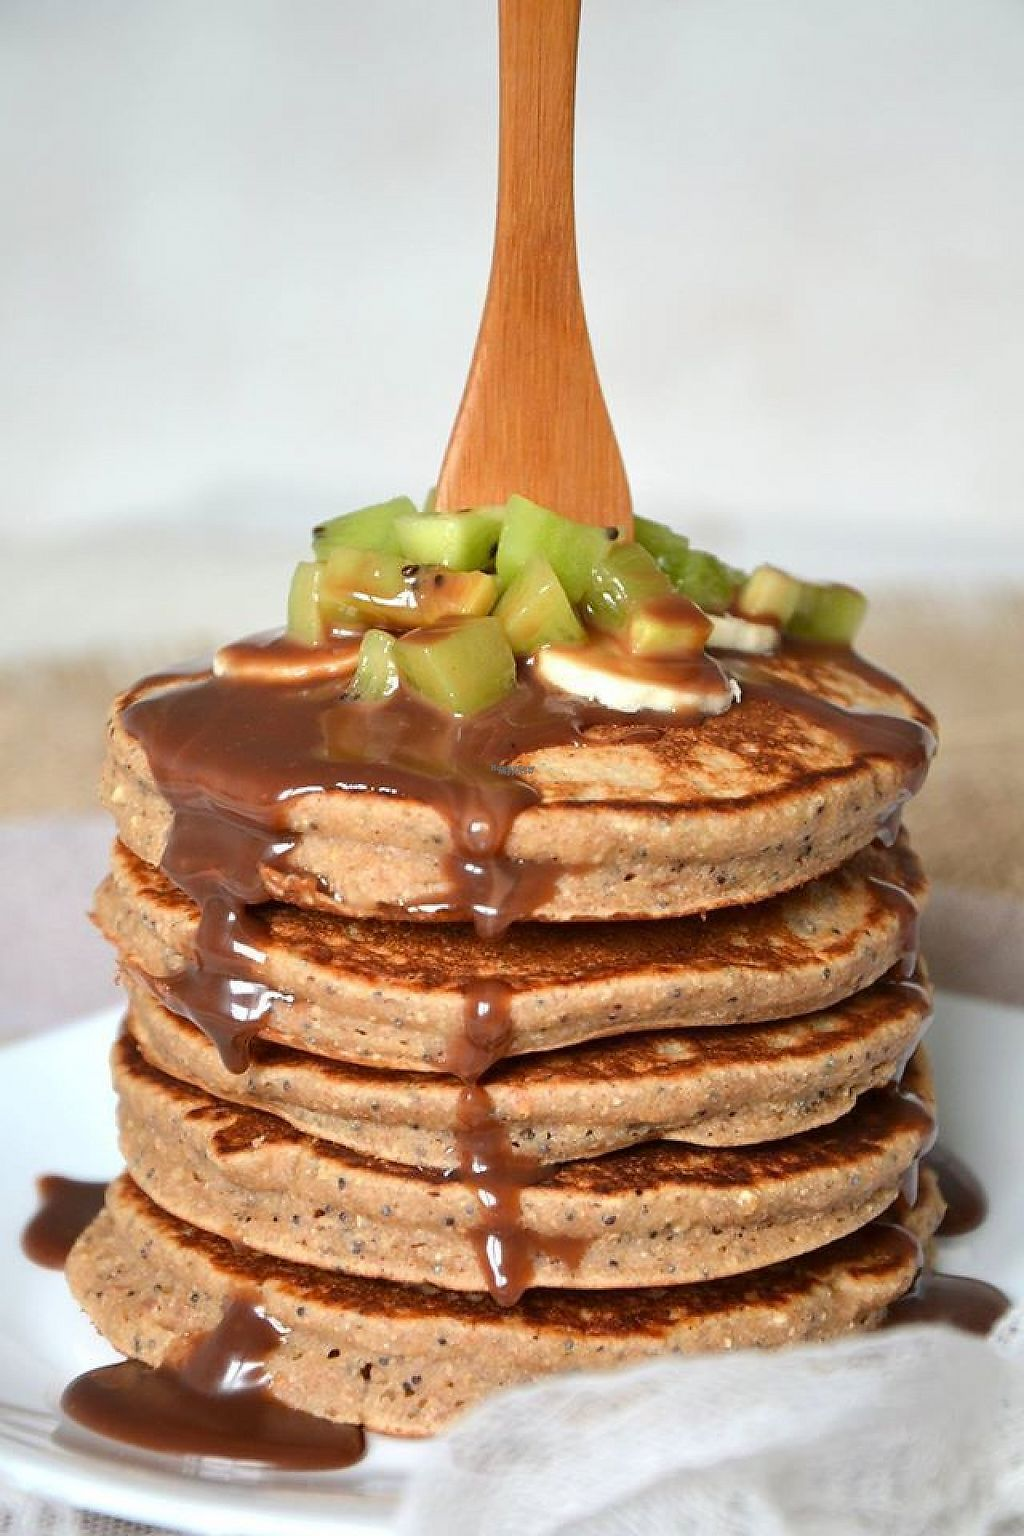 """Photo of La Vie Claire  by <a href=""""/members/profile/community"""">community</a> <br/>vegan pancakes  <br/> February 4, 2017  - <a href='/contact/abuse/image/71979/221850'>Report</a>"""